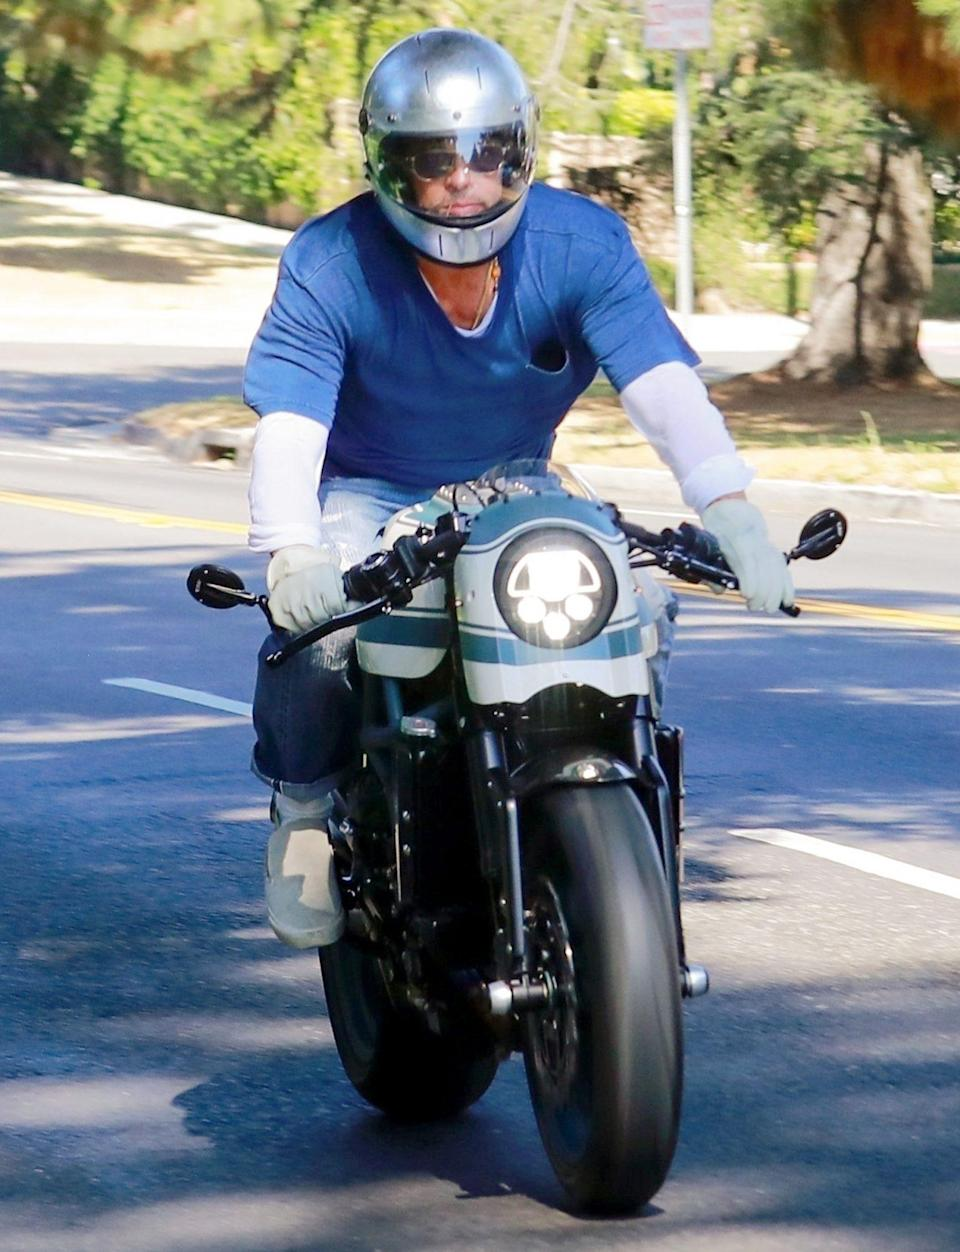 <p>Brad Pitt is seen leaving ex Angelina Jolie's home on his motorcycle after a visit with their kids on Tuesday in Los Angeles. </p>